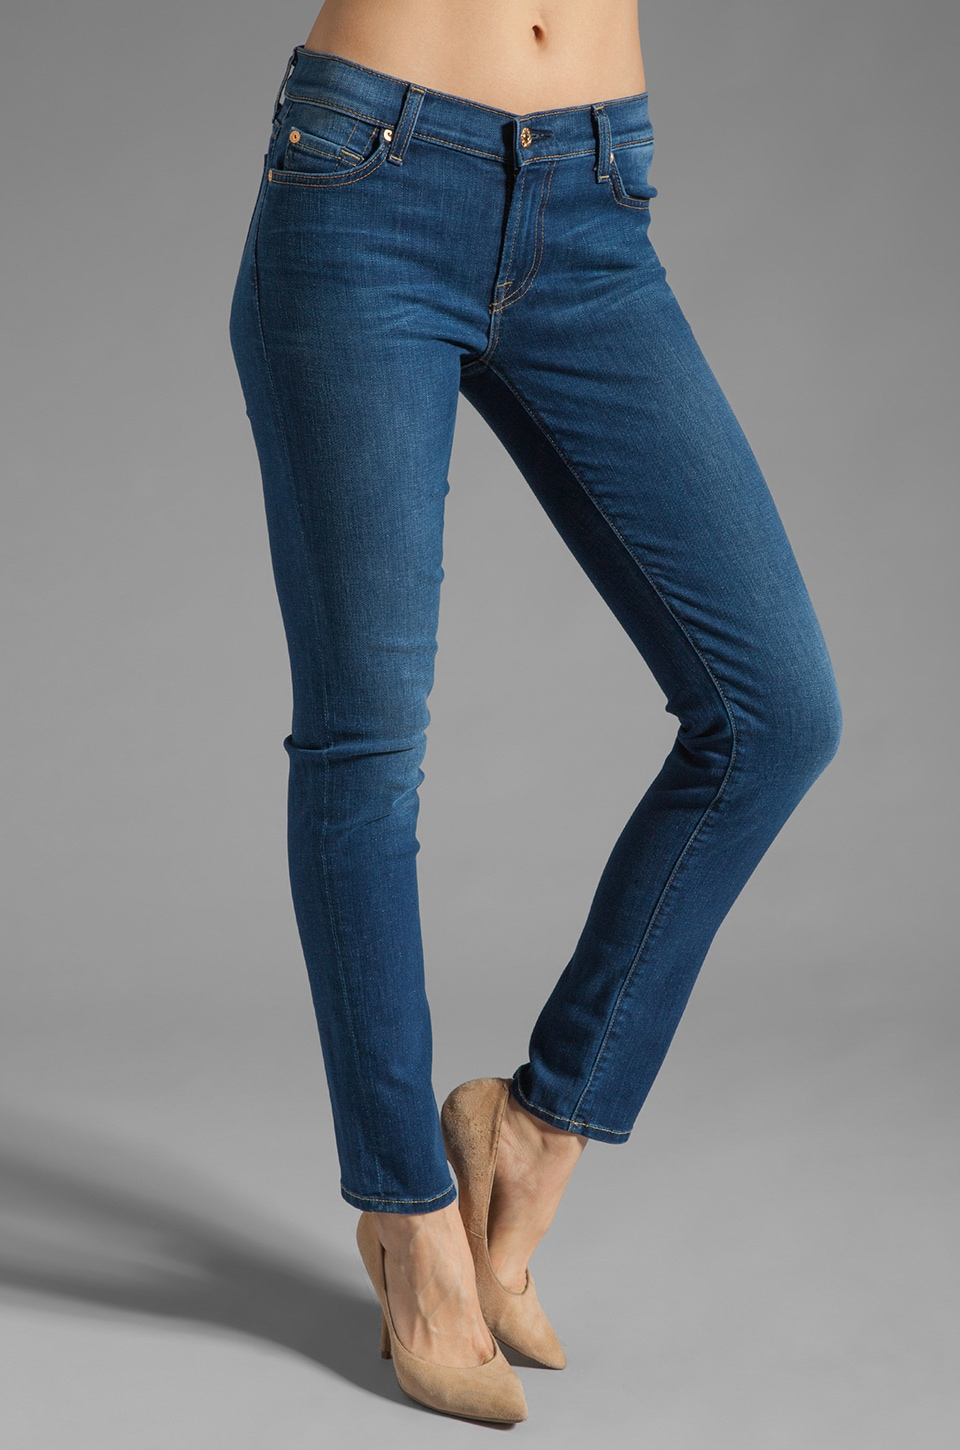 7 For All Mankind The Slim Cigarette in Light Blue Stretch